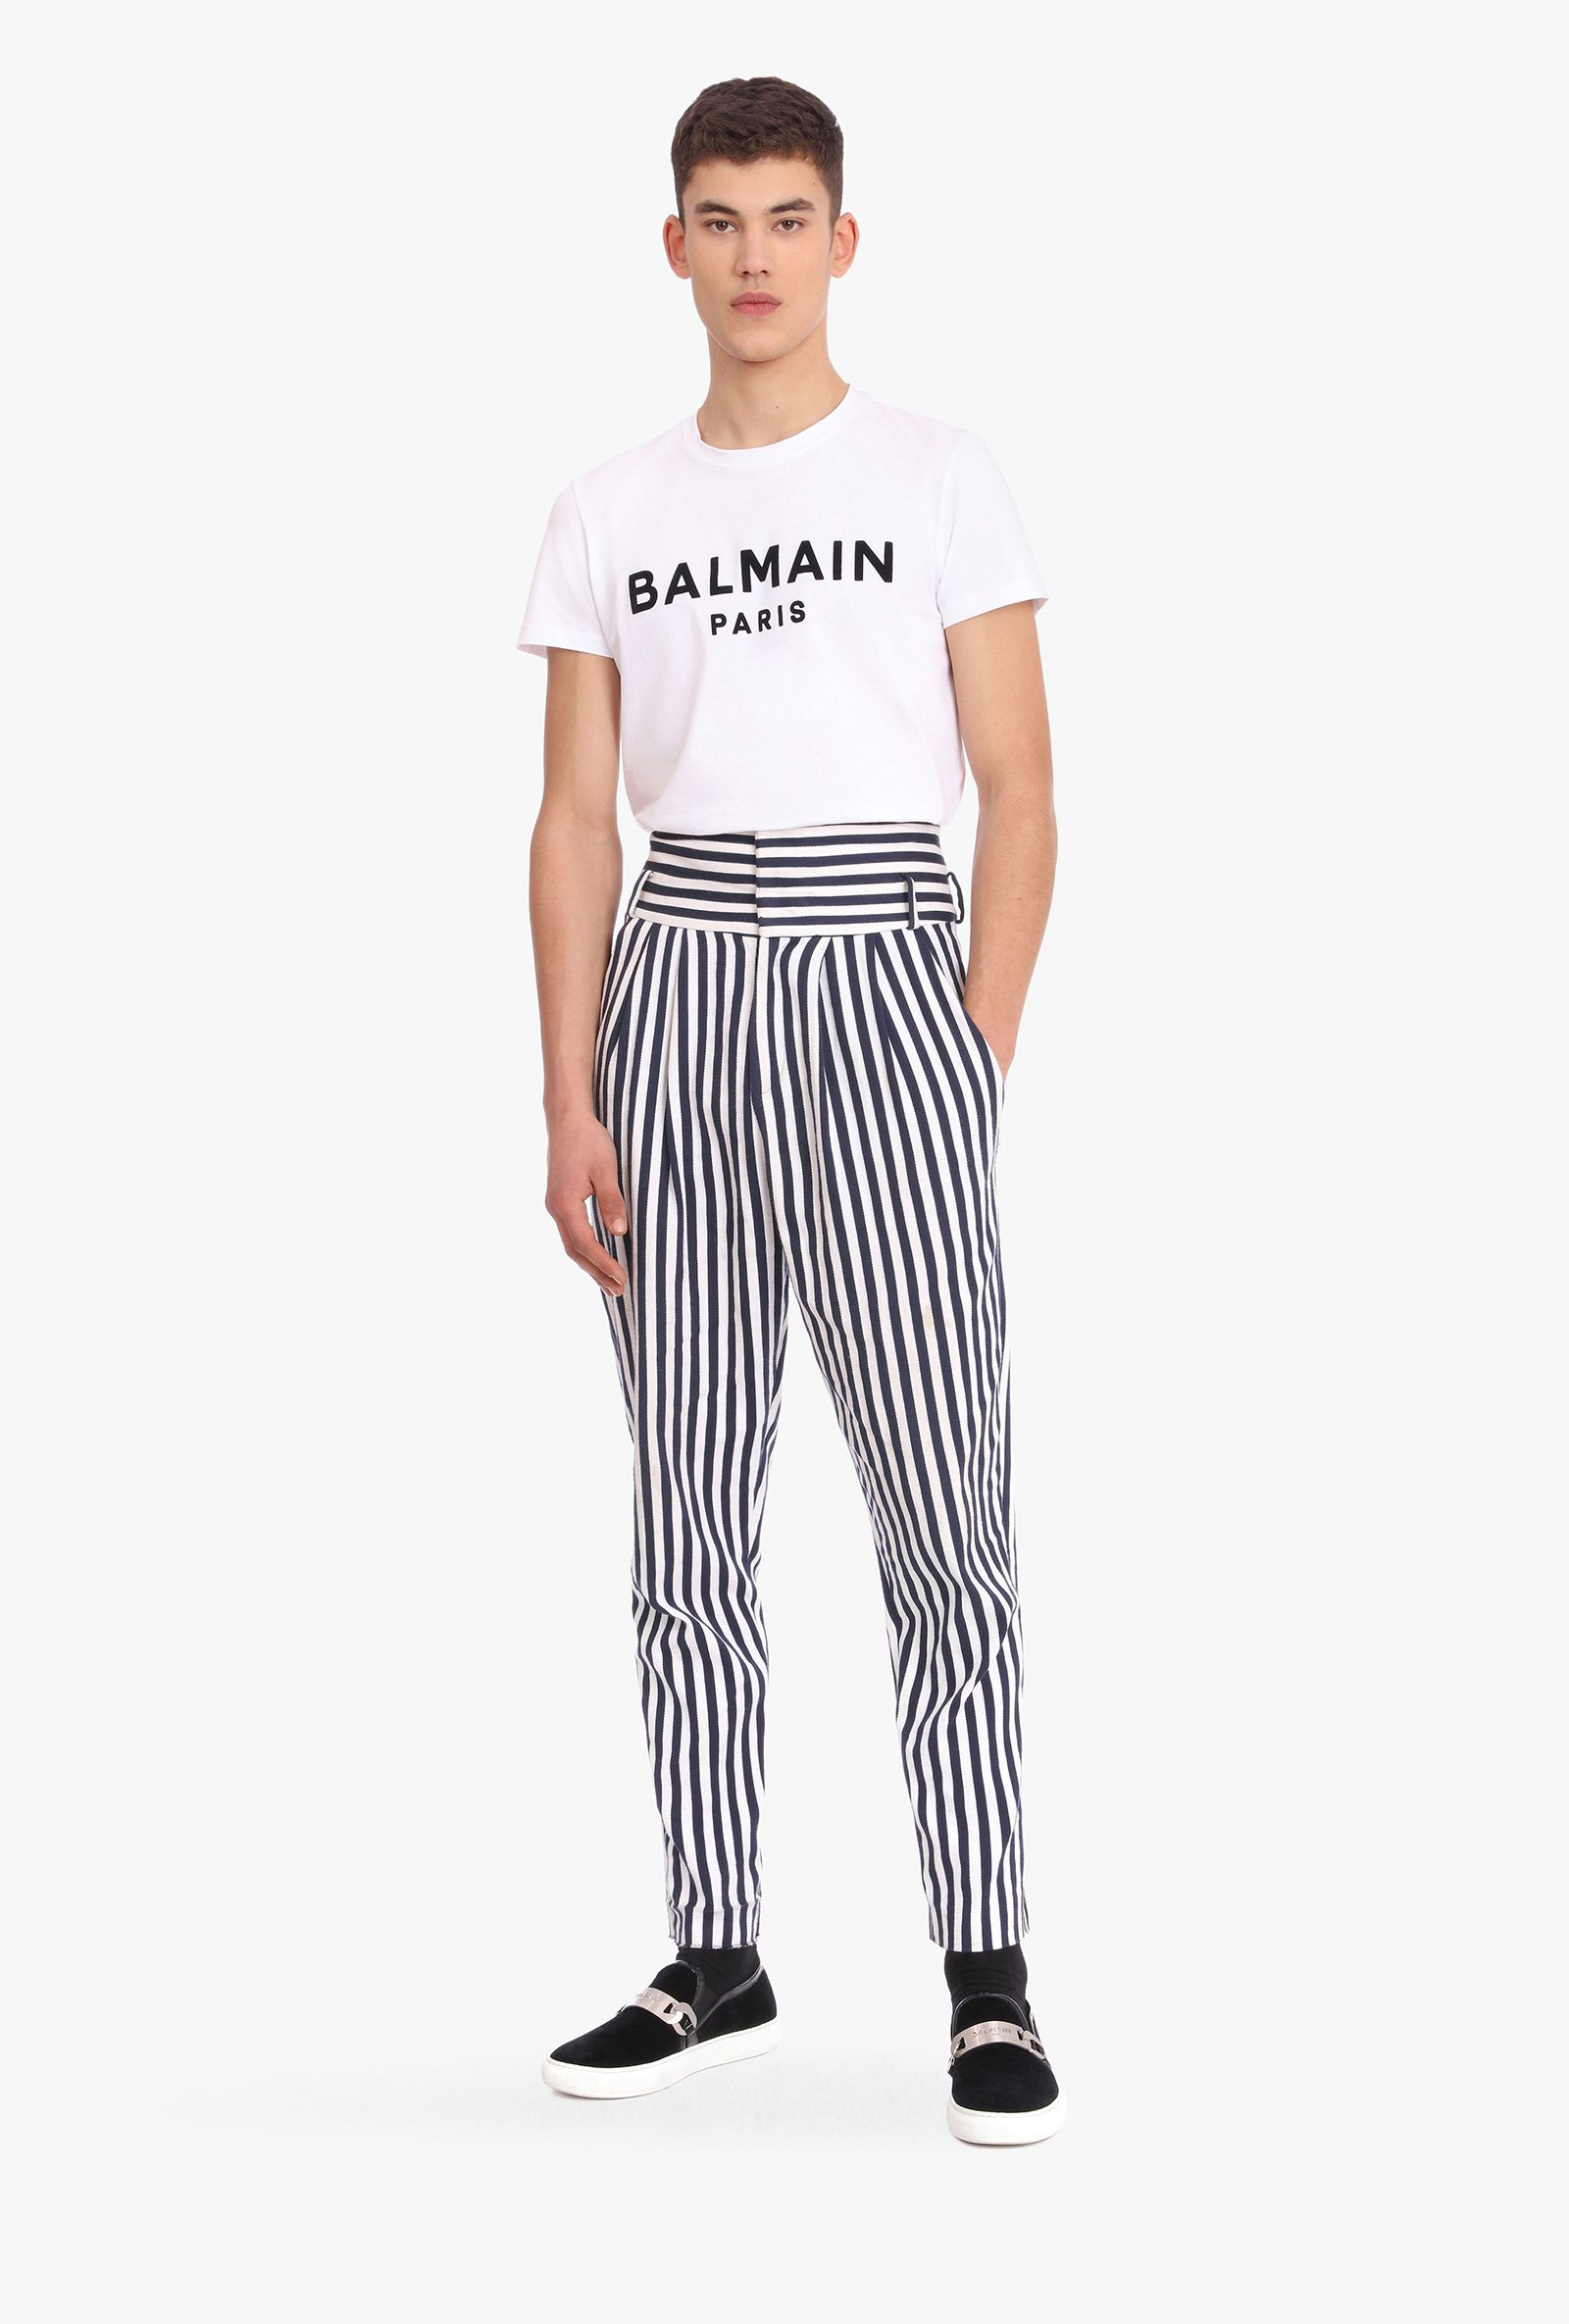 man wearing a Balmain shirt and high waisted striped pants, casual fashion, casual outfits, casual clothes, casual wear